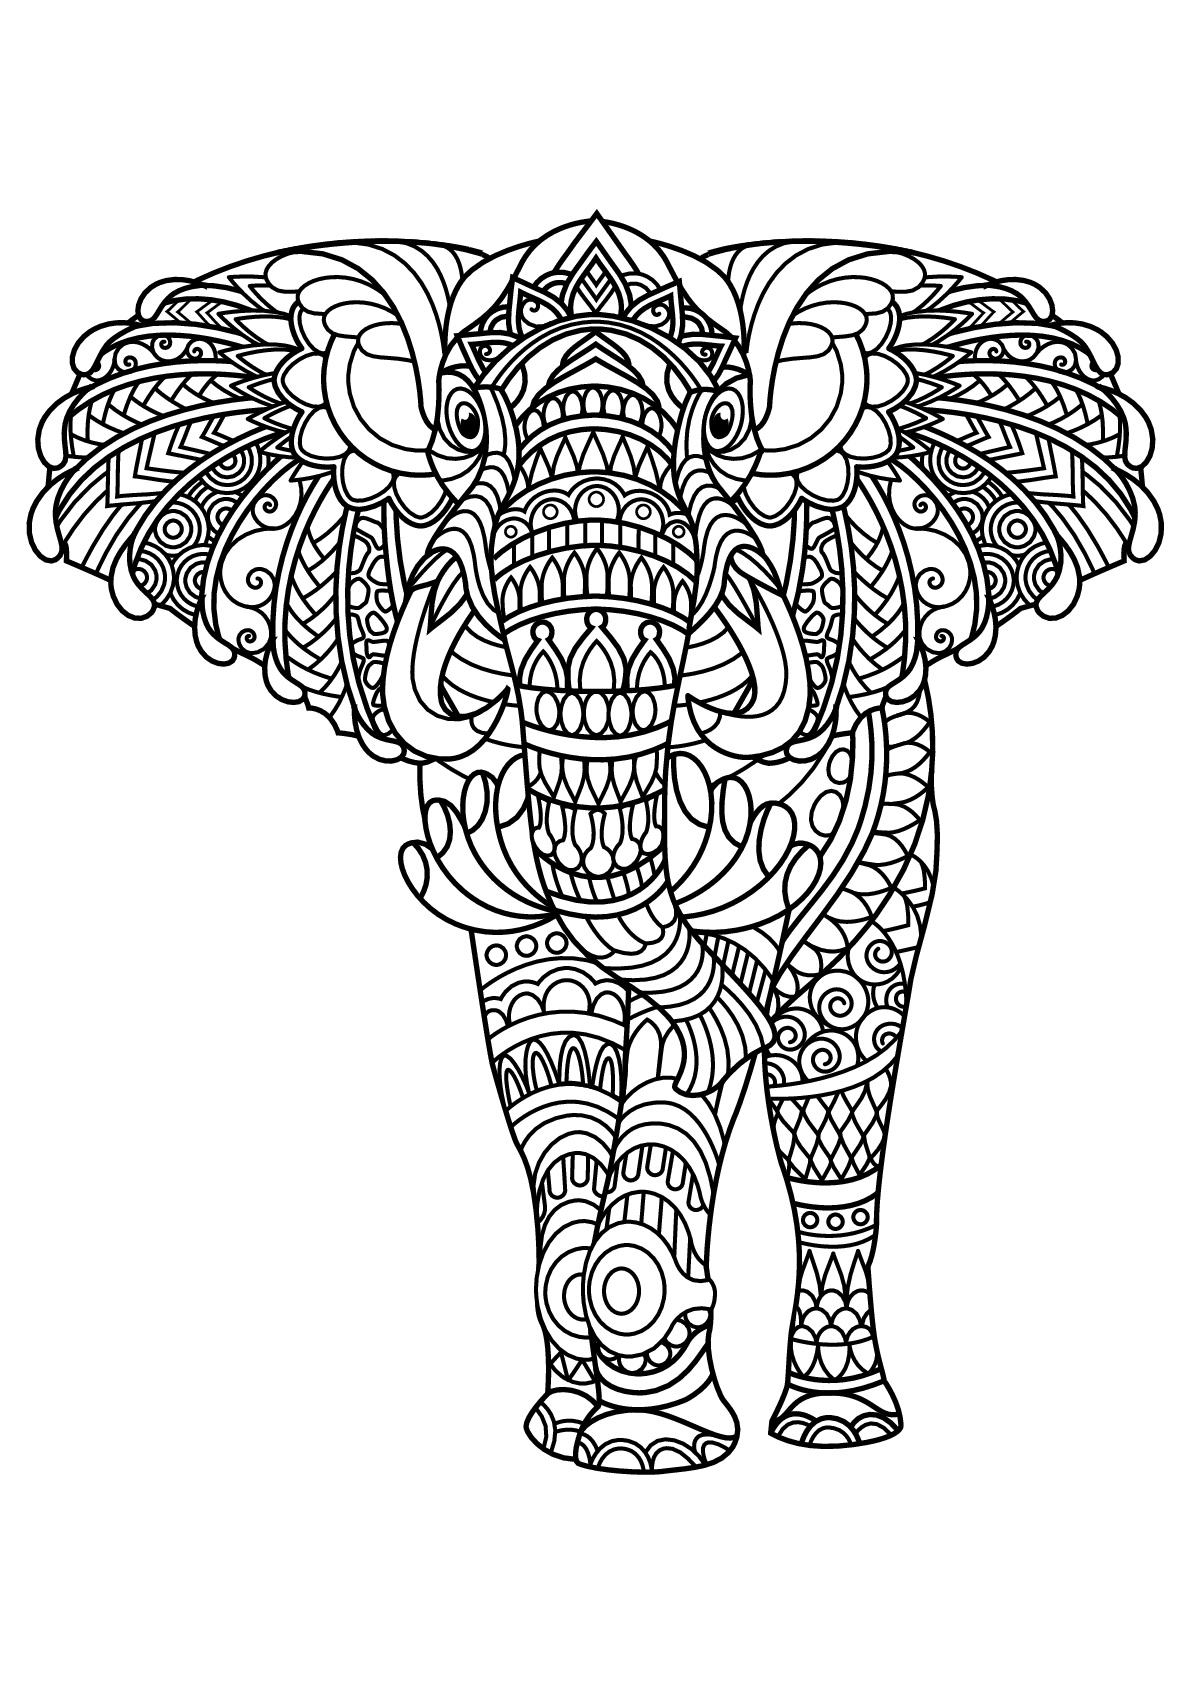 free printable coloring pages for adults and kids free book elephant elephants adult coloring pages kids and free printable adults pages for coloring